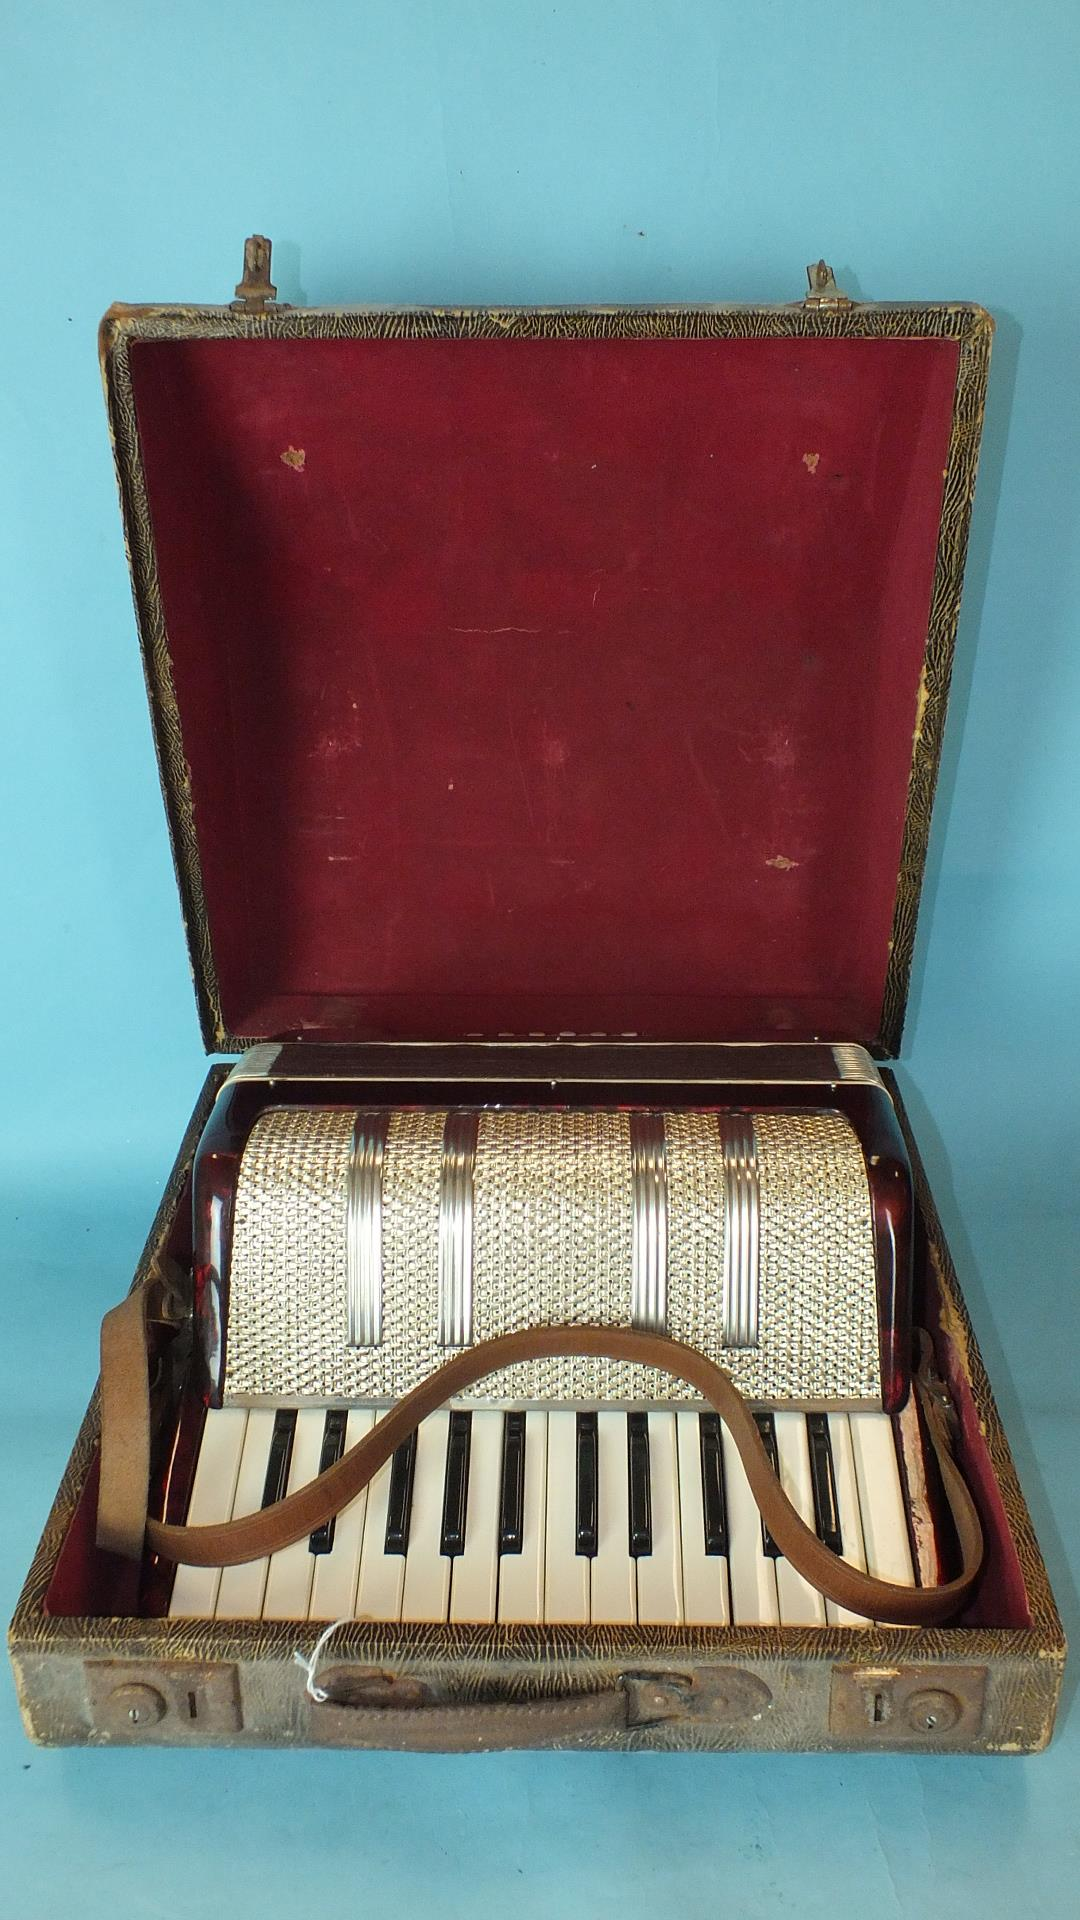 Lot 498 - A Lyca accordion, cased.